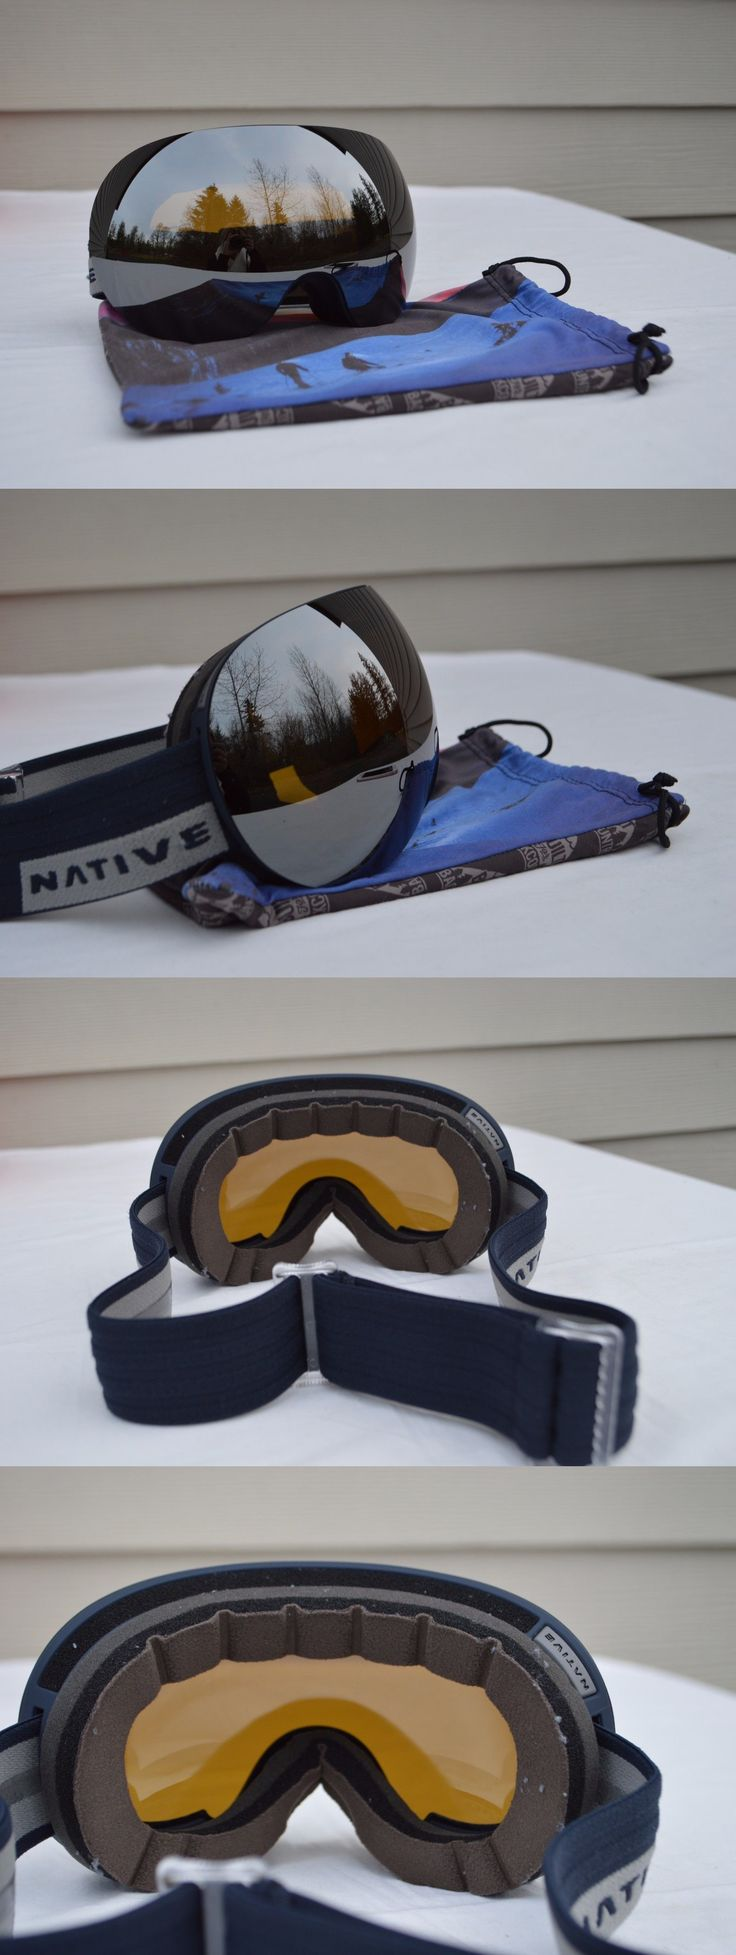 Goggles and Sunglasses 21230: 2017 Nwob Mens Native Snowboard Goggles $180 Adjustable Blue Frame Silver Mirror -> BUY IT NOW ONLY: $126 on eBay!